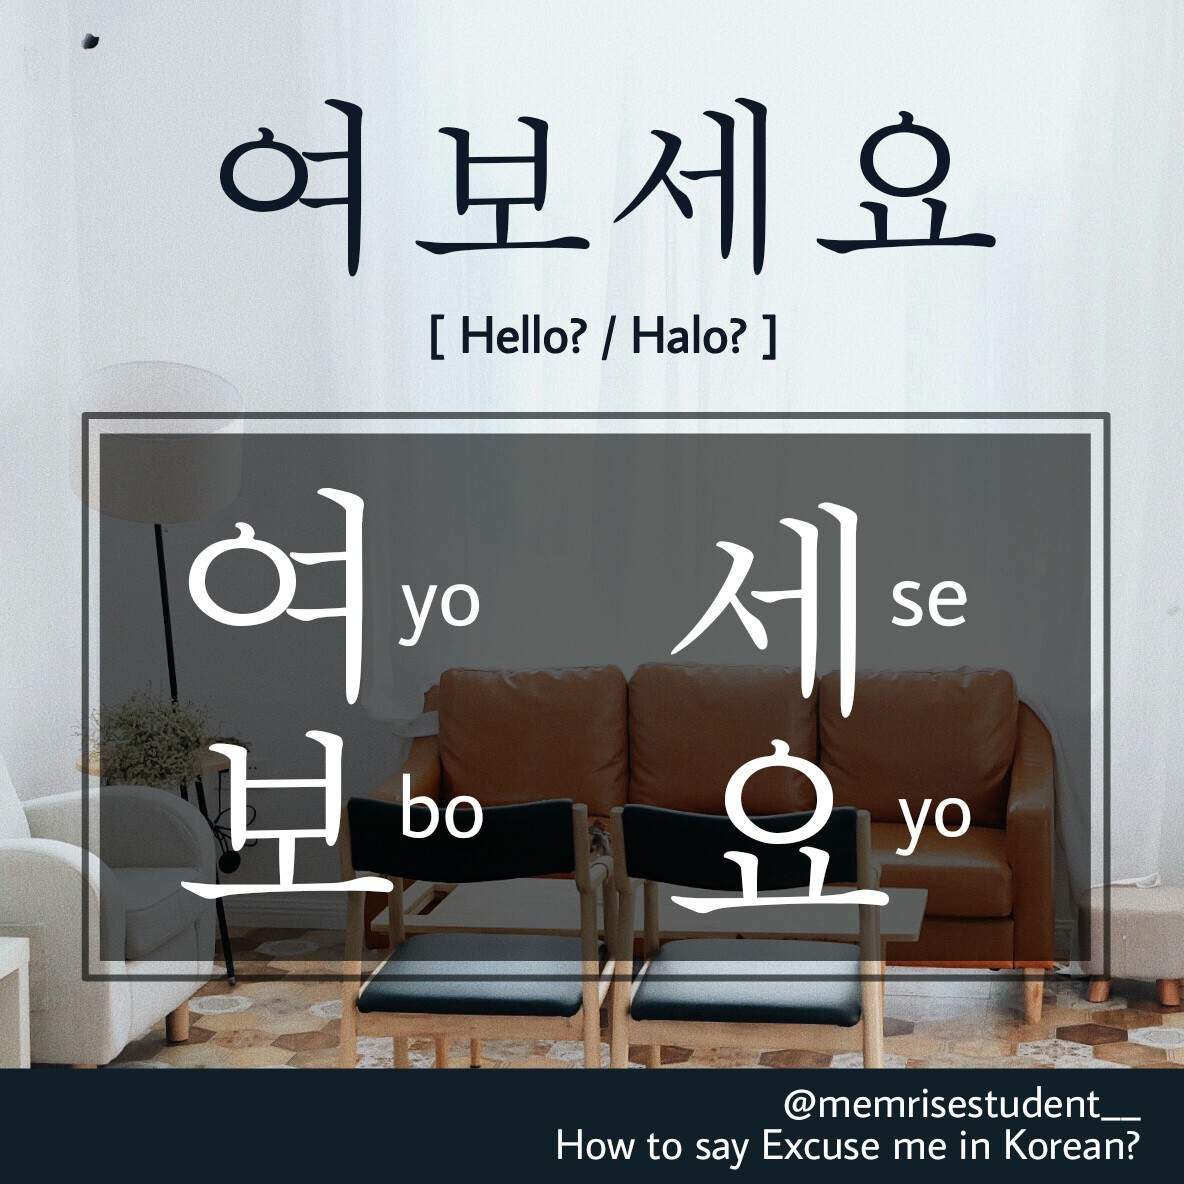 How to say Hello in Korean for answering a phonecall?